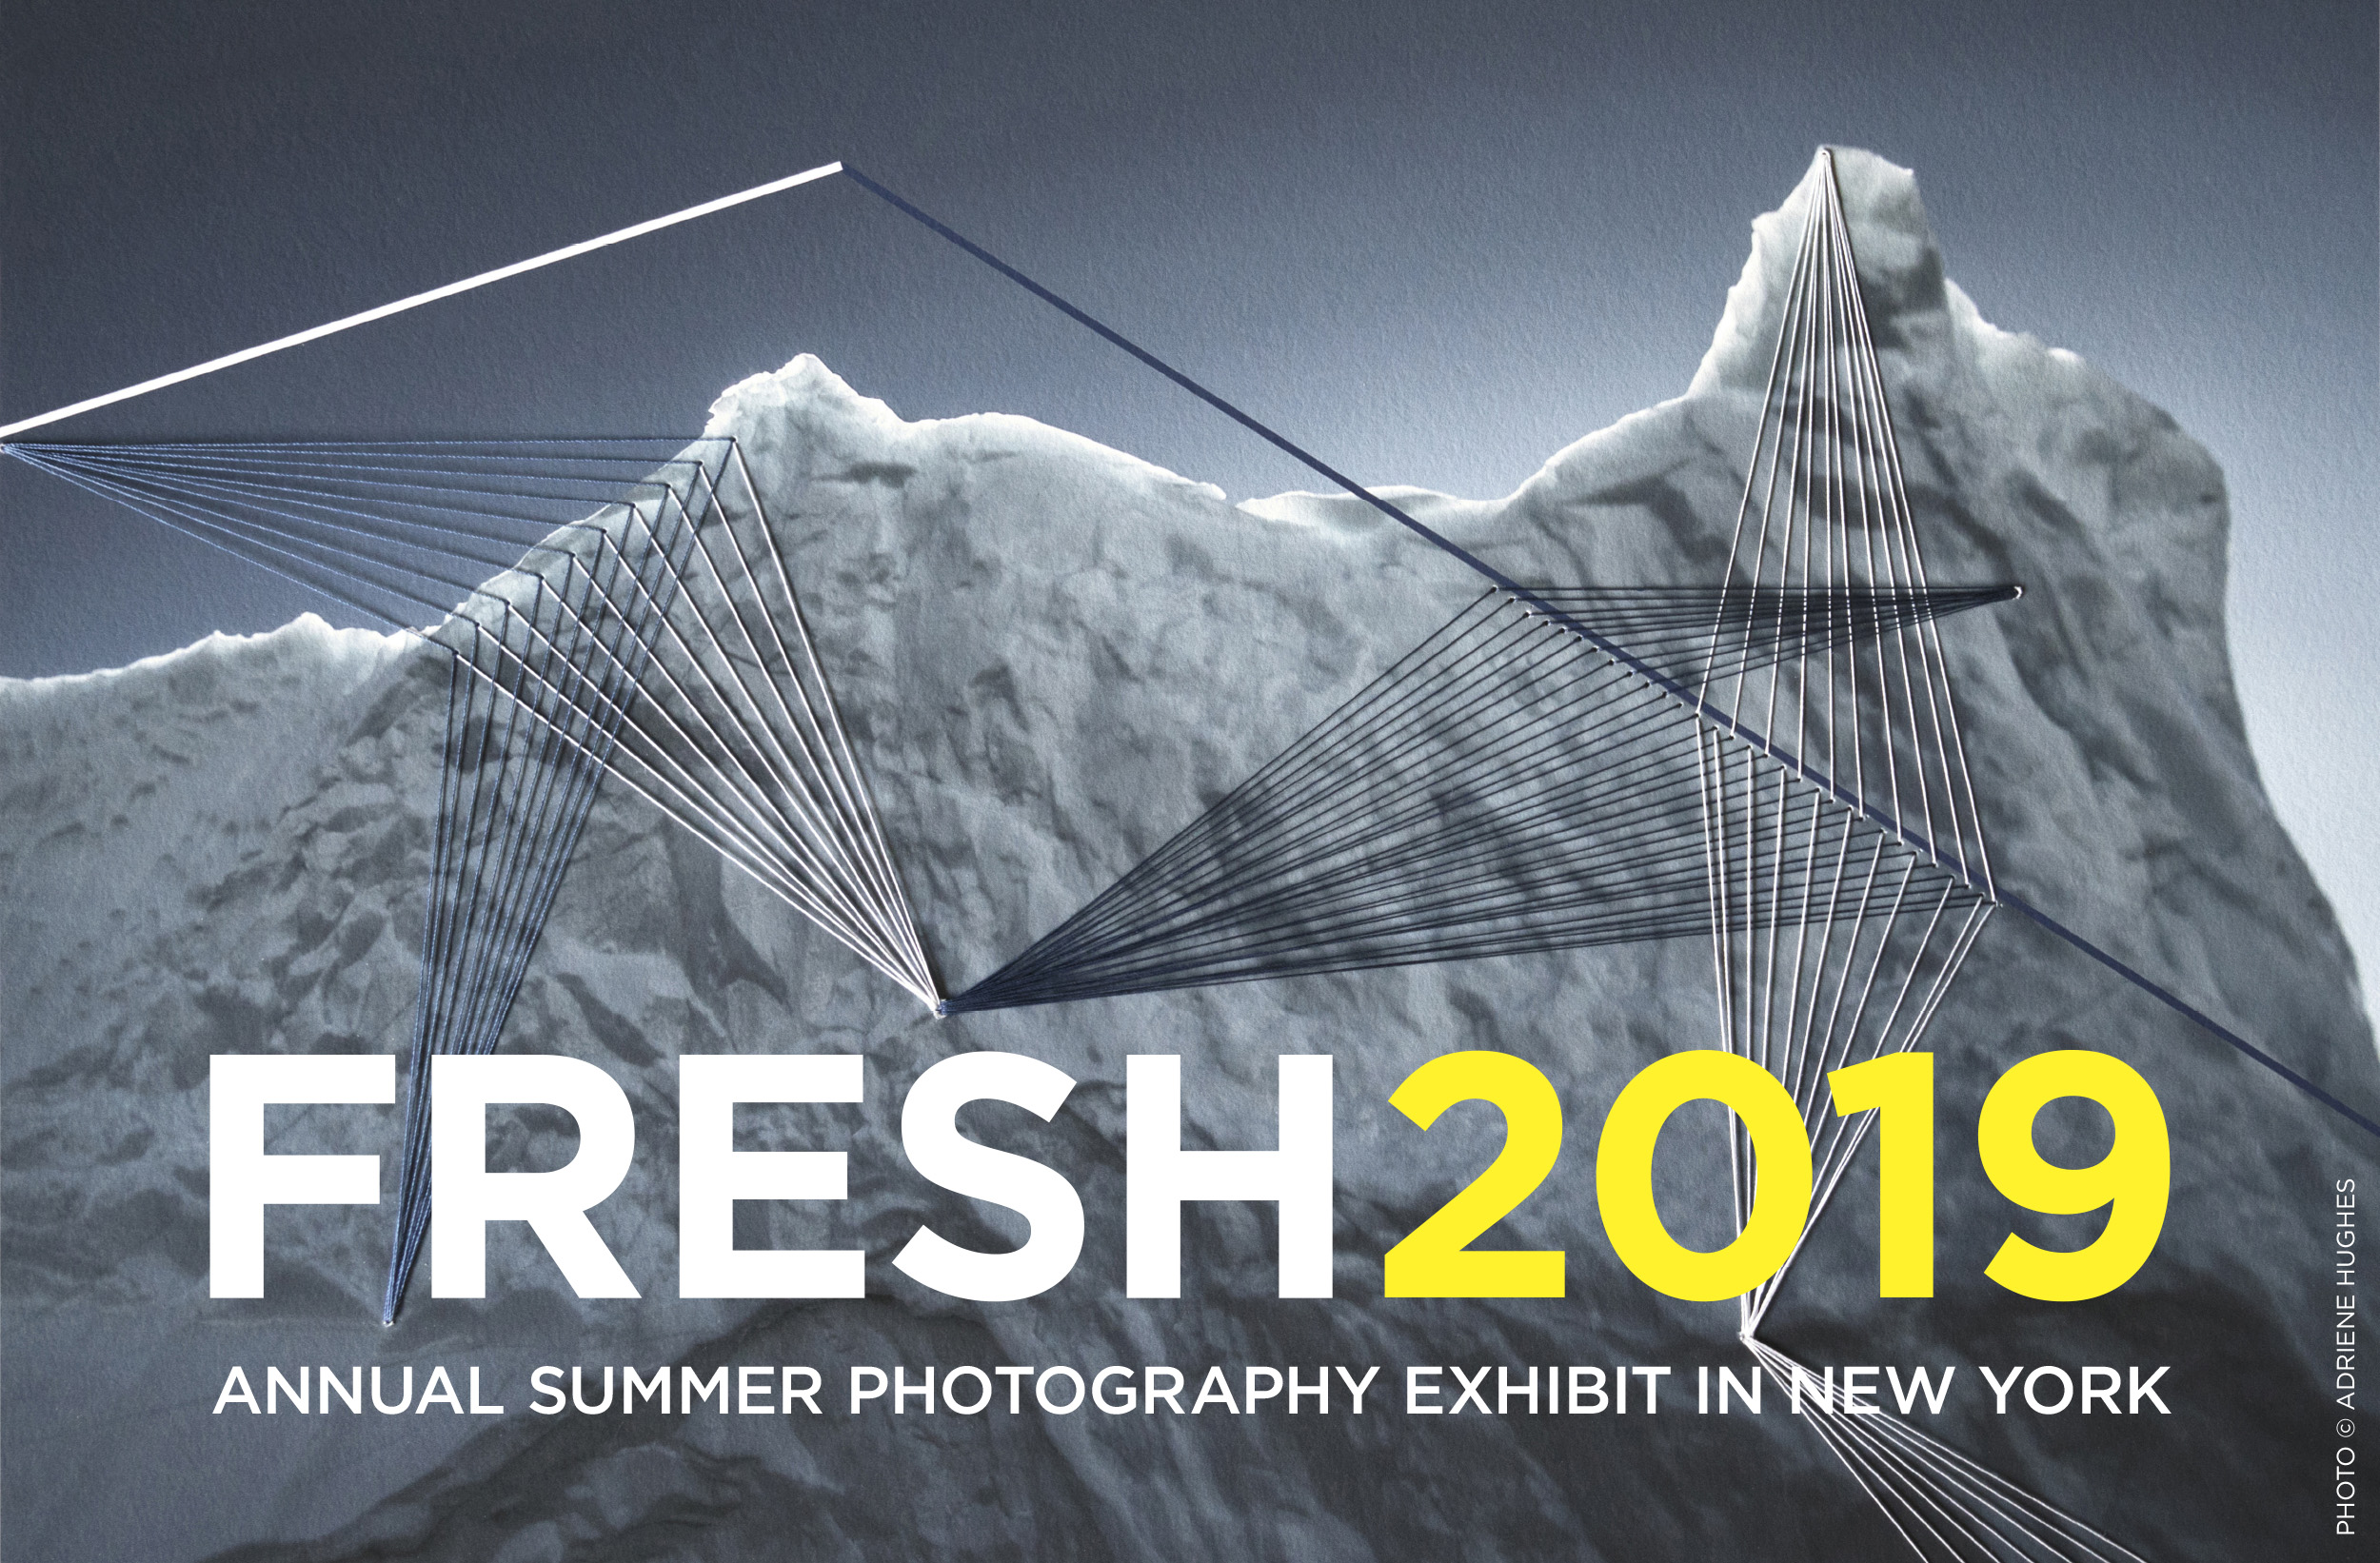 Marketing graphic for the Fresh 2019 Annual Summer Photography Exhibit in New York.